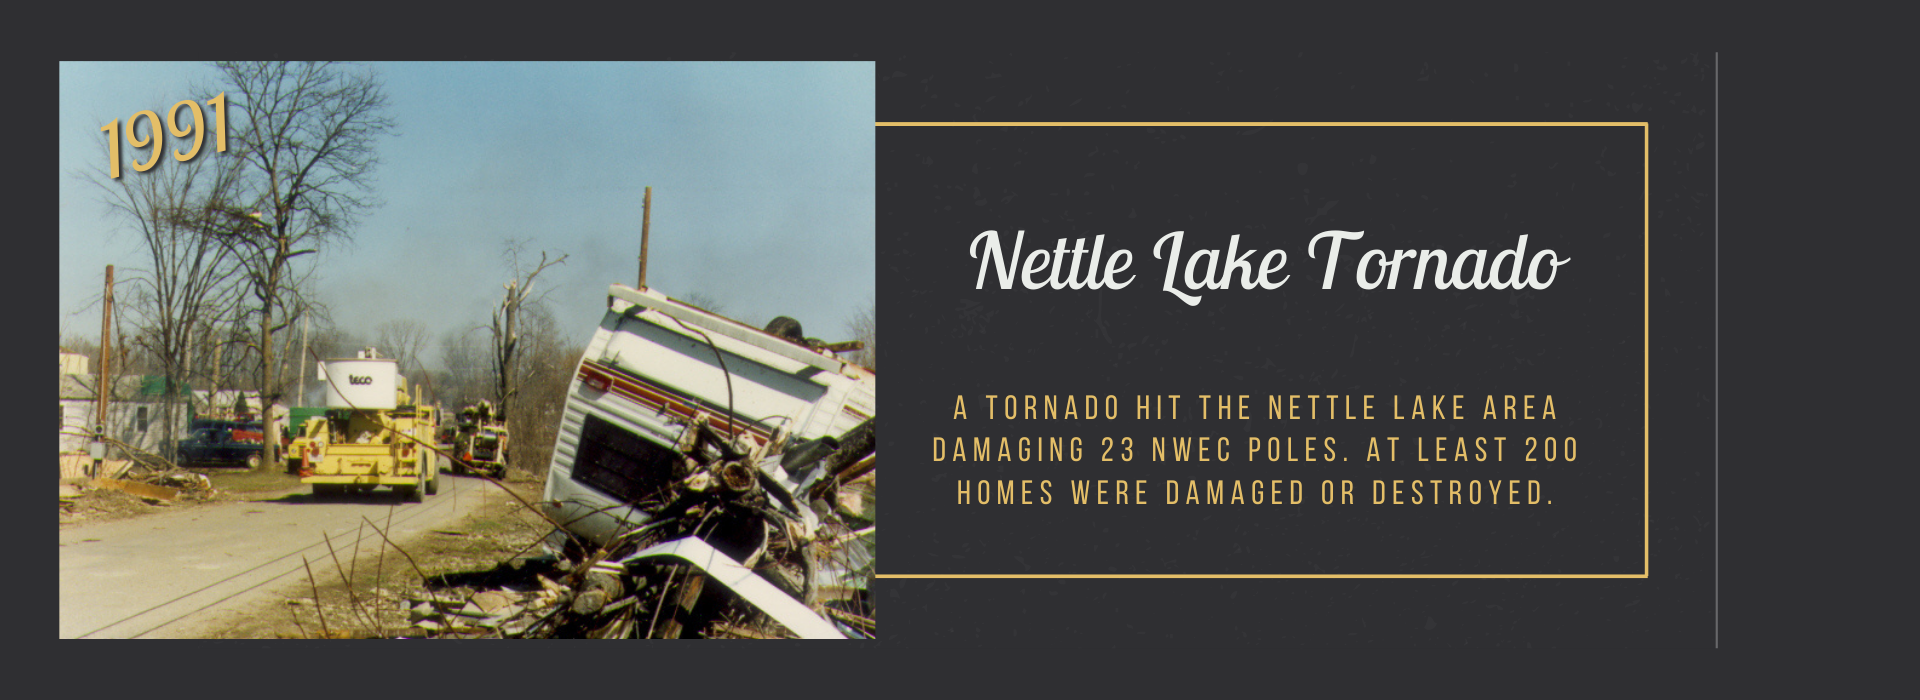 A tornado hit the Nettle Lake area damaging 23 NWEC poles. at least 200 homes were damaged or destroyed.